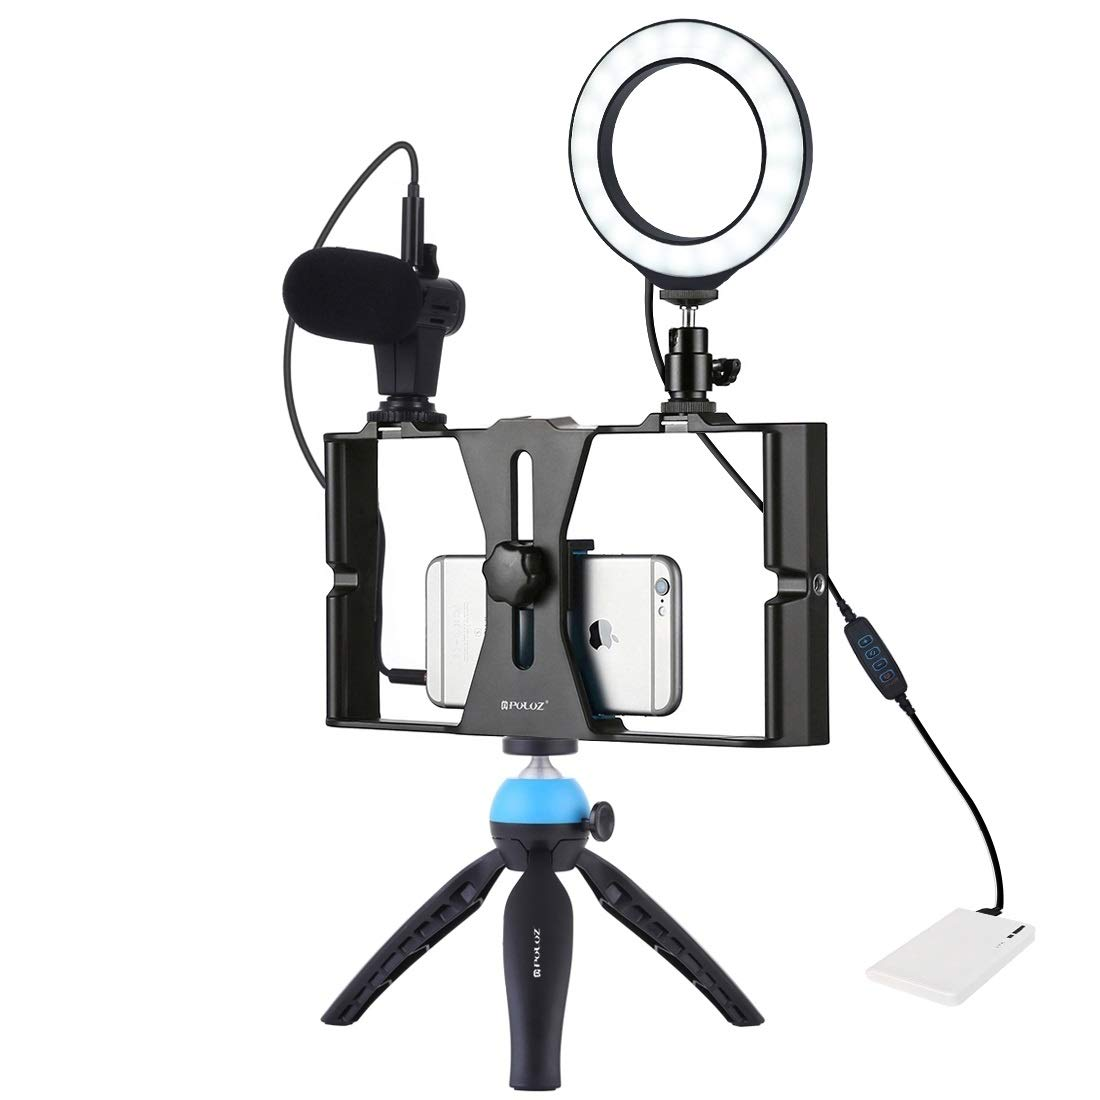 JIN Camera Accessory 4 in 1 Vlogging Live Broadcast Smartphone Video Rig + 4.7 inch 12cm Ring LED Selfie Light Kits with Microphone + Tripod Mount + Cold Shoe Tripod Head for iPhone, Galaxy, Huawei, X by JIN-US